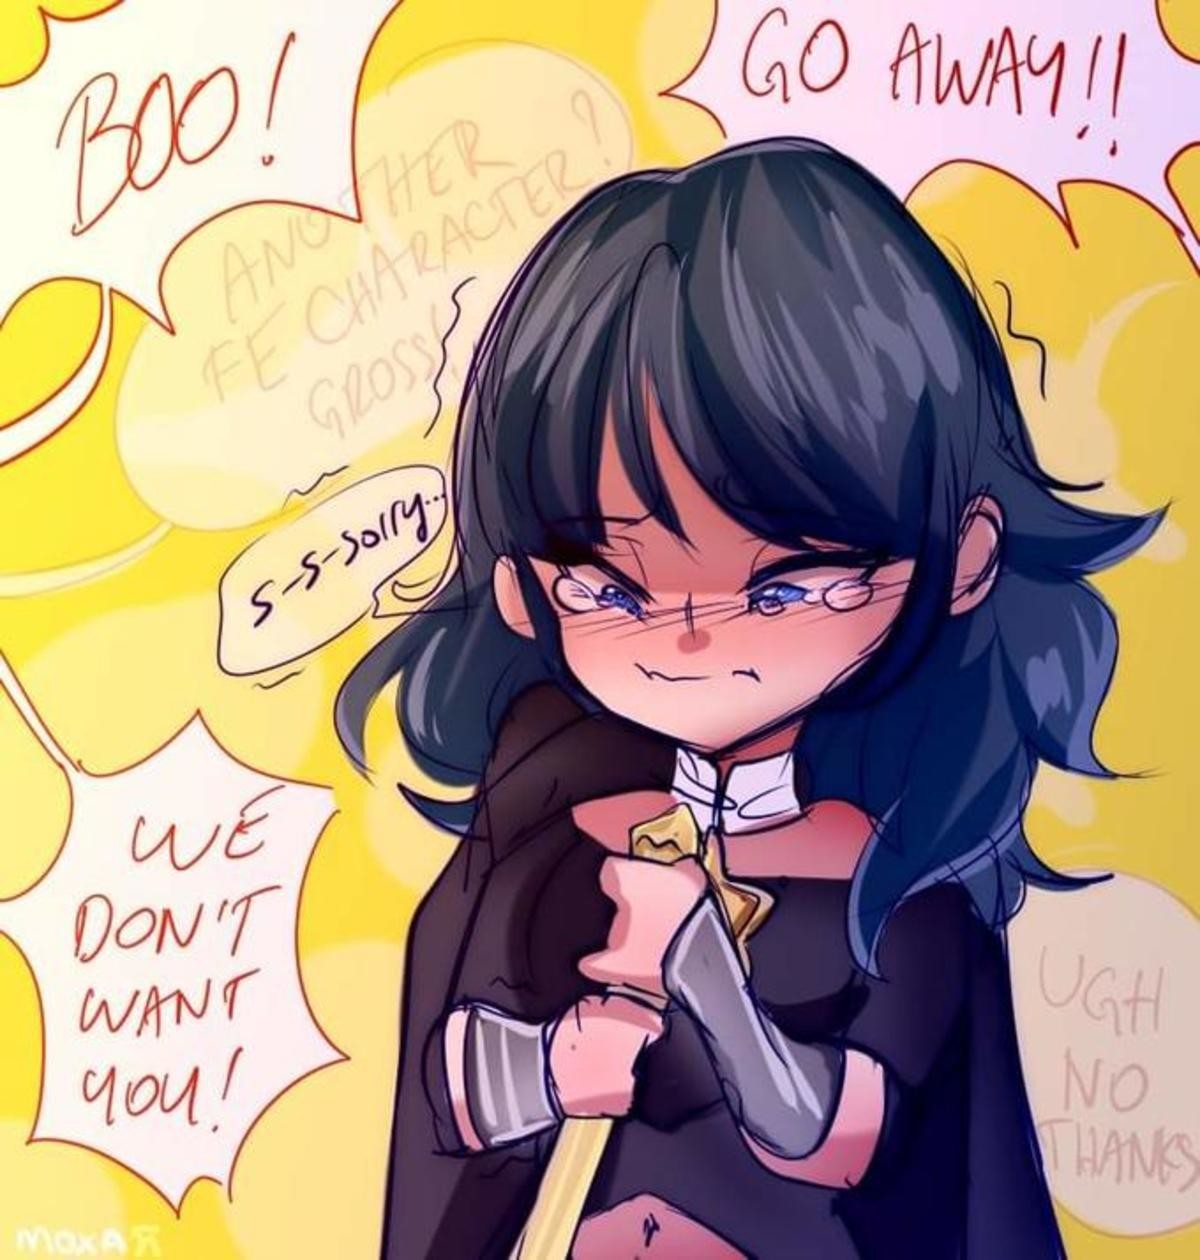 Bullied Byleth. .. Byleth is too busy seducing every single student and faculty member in the monastery to care about the complaints.